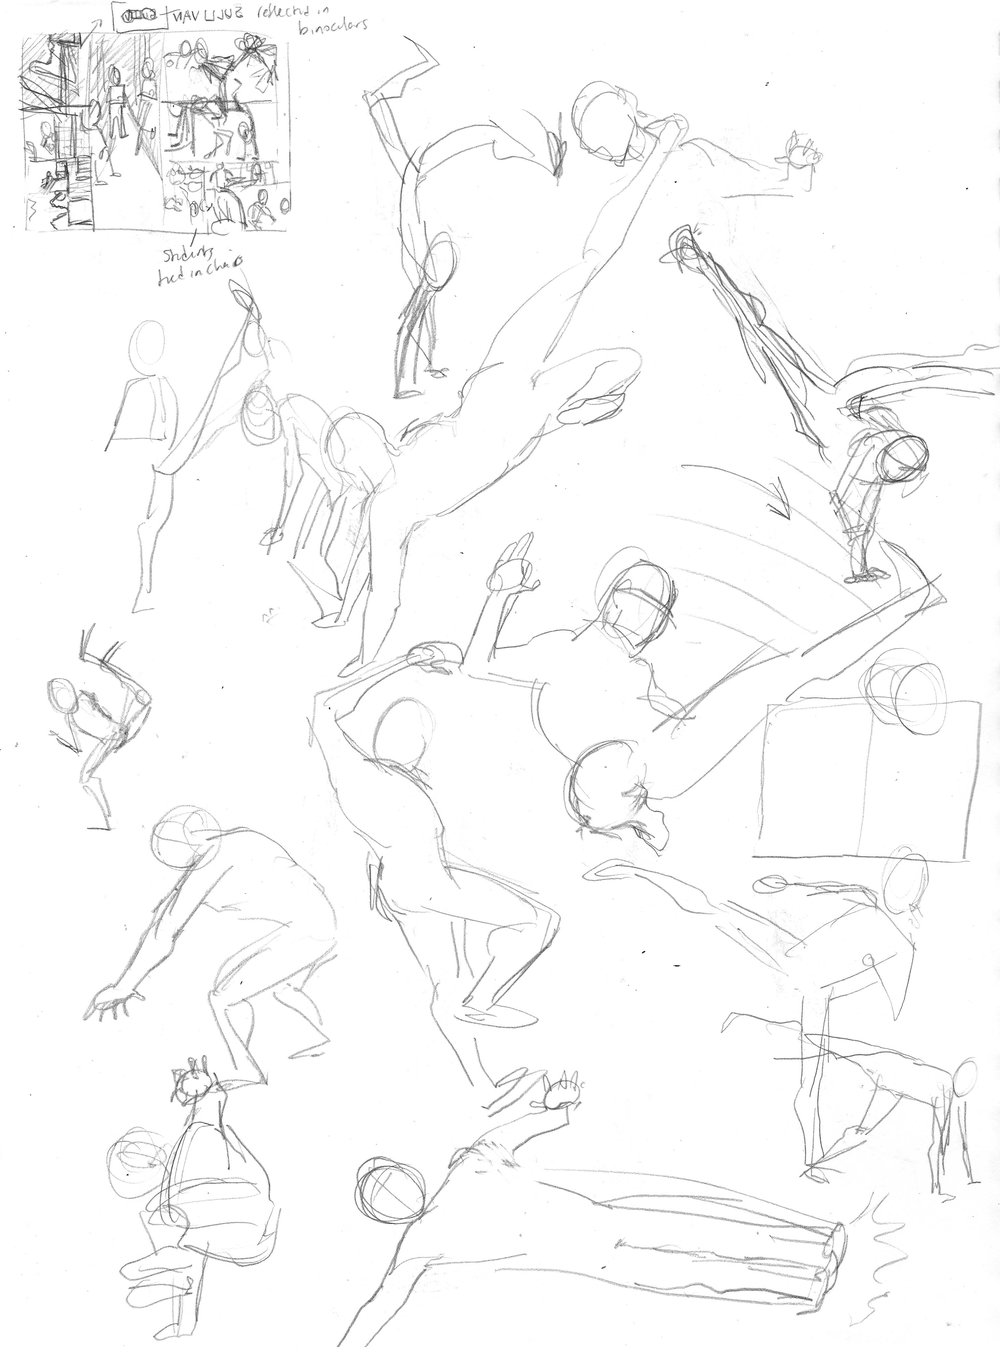 hunter haute_thumbnails sketch 2.jpg